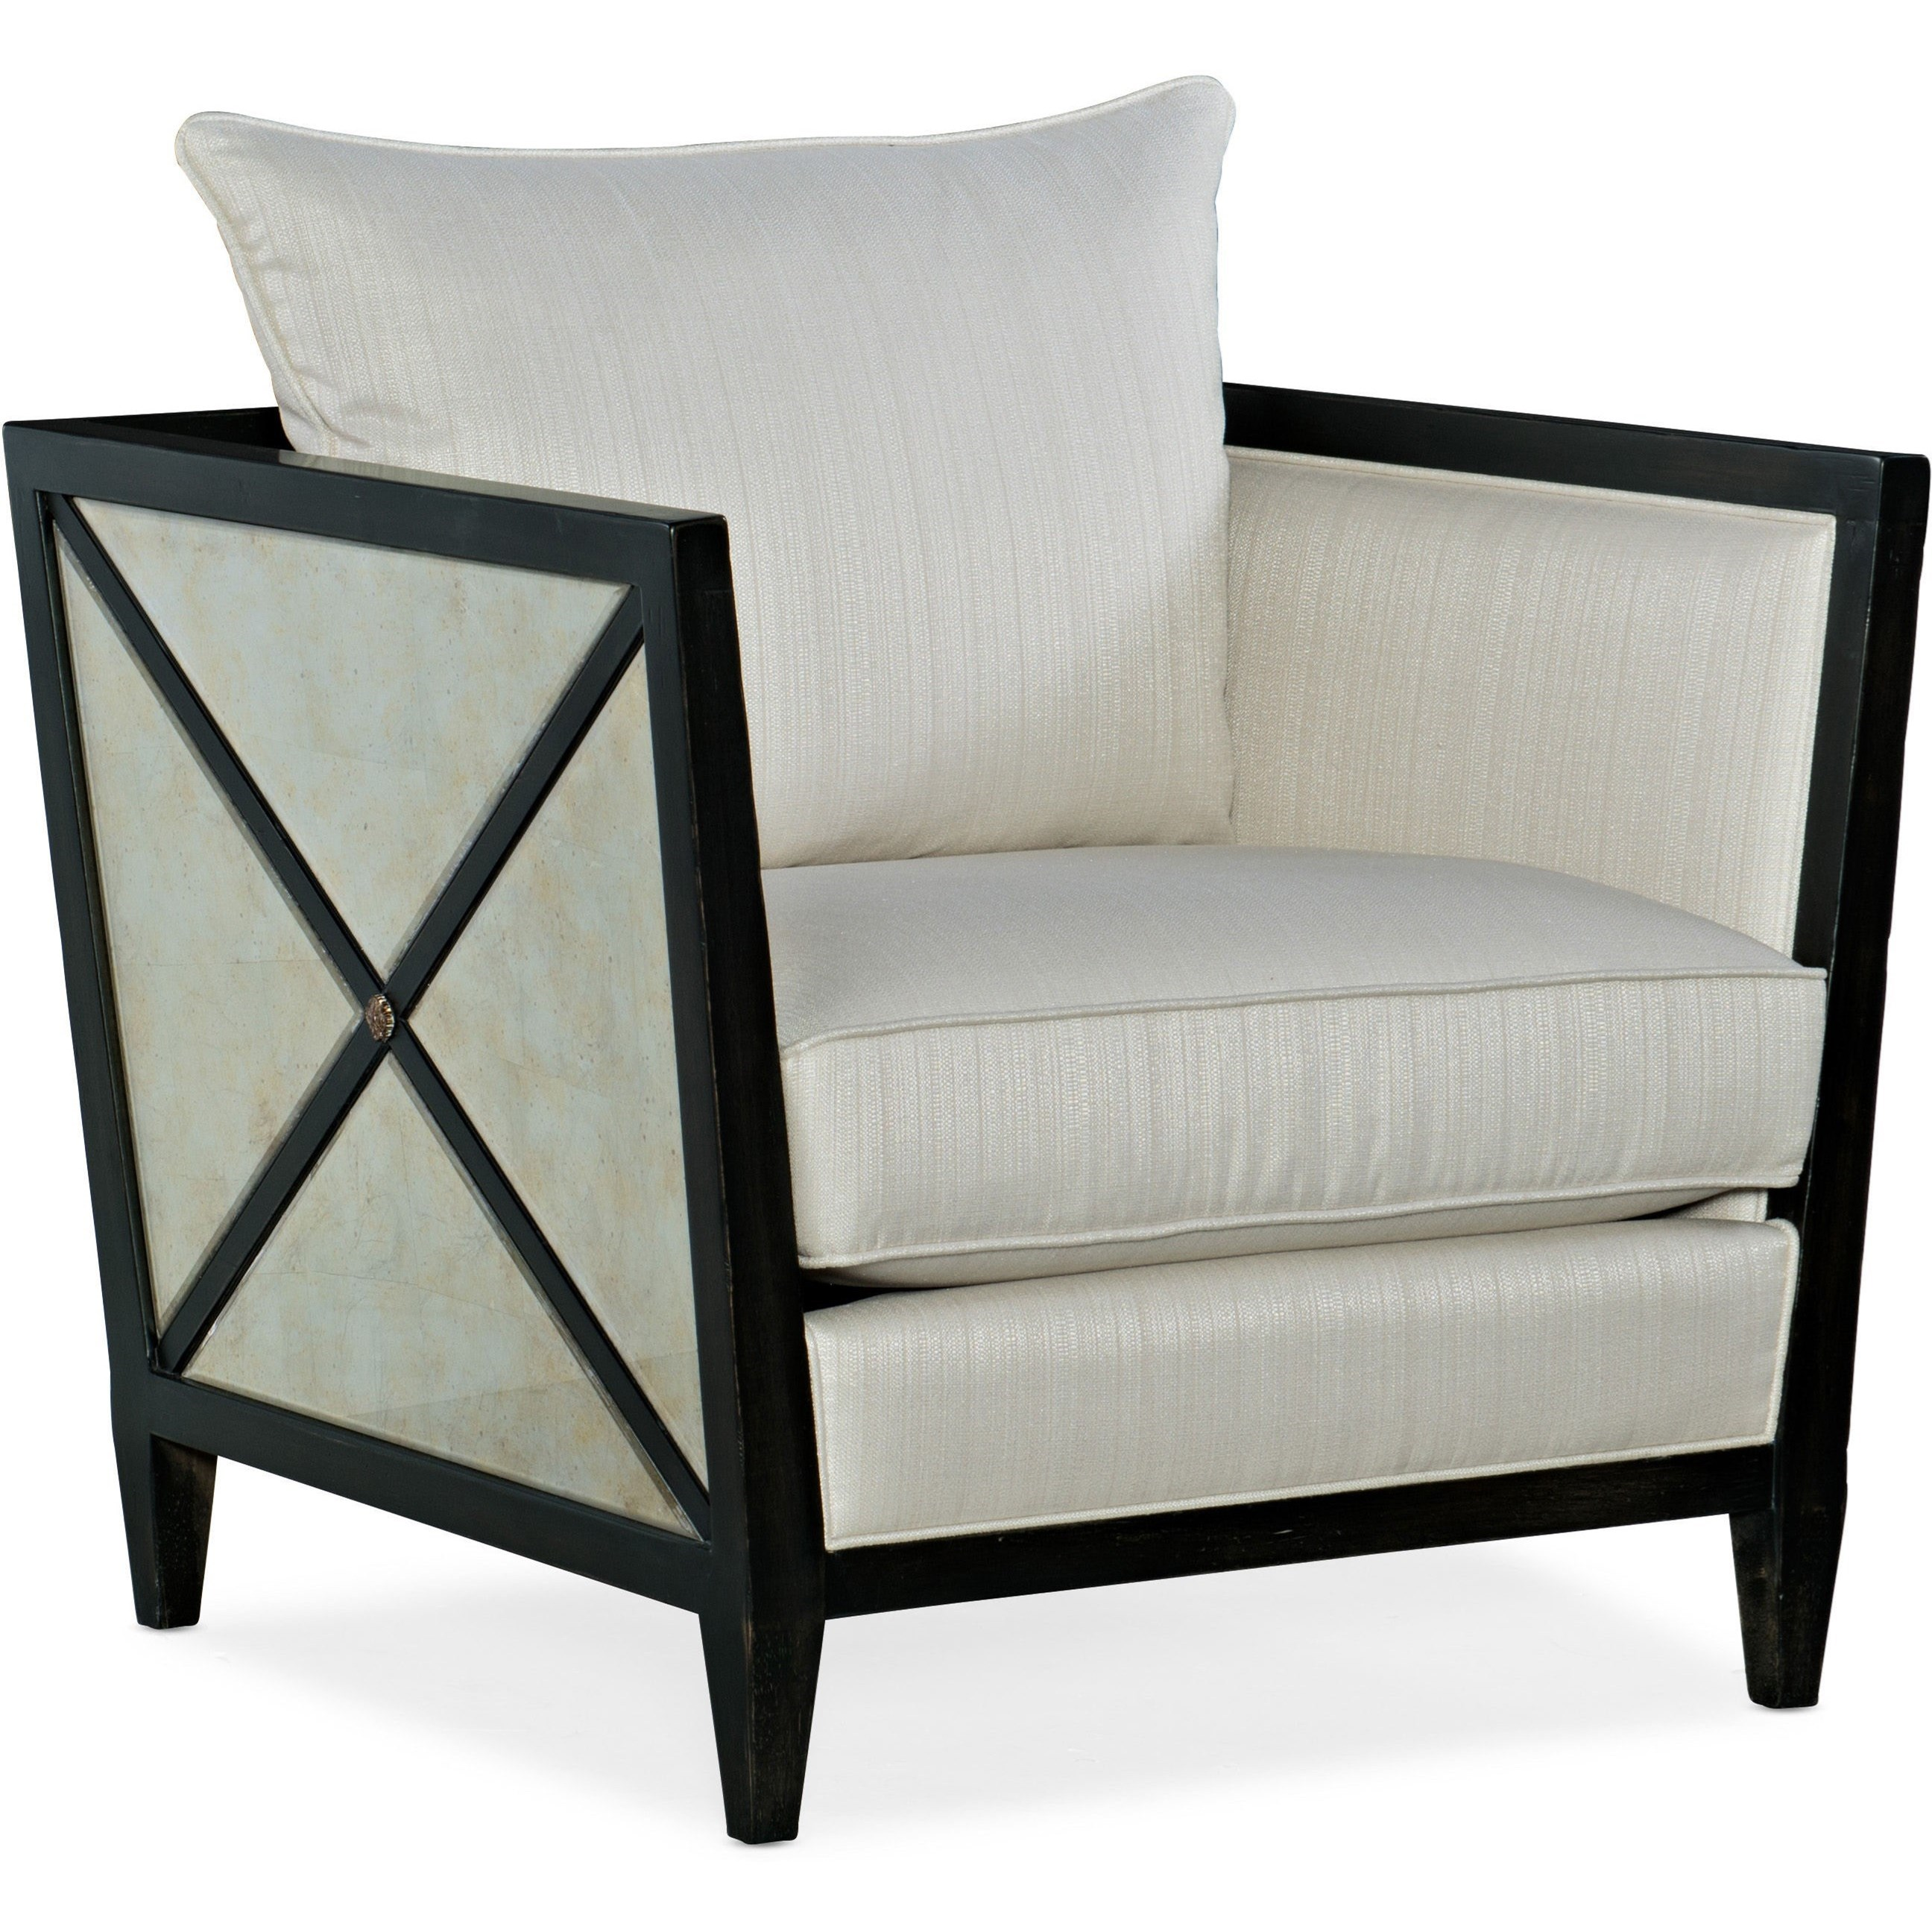 Sanctuary Joli Lounge Chair by Hooker Furniture at Baer's Furniture